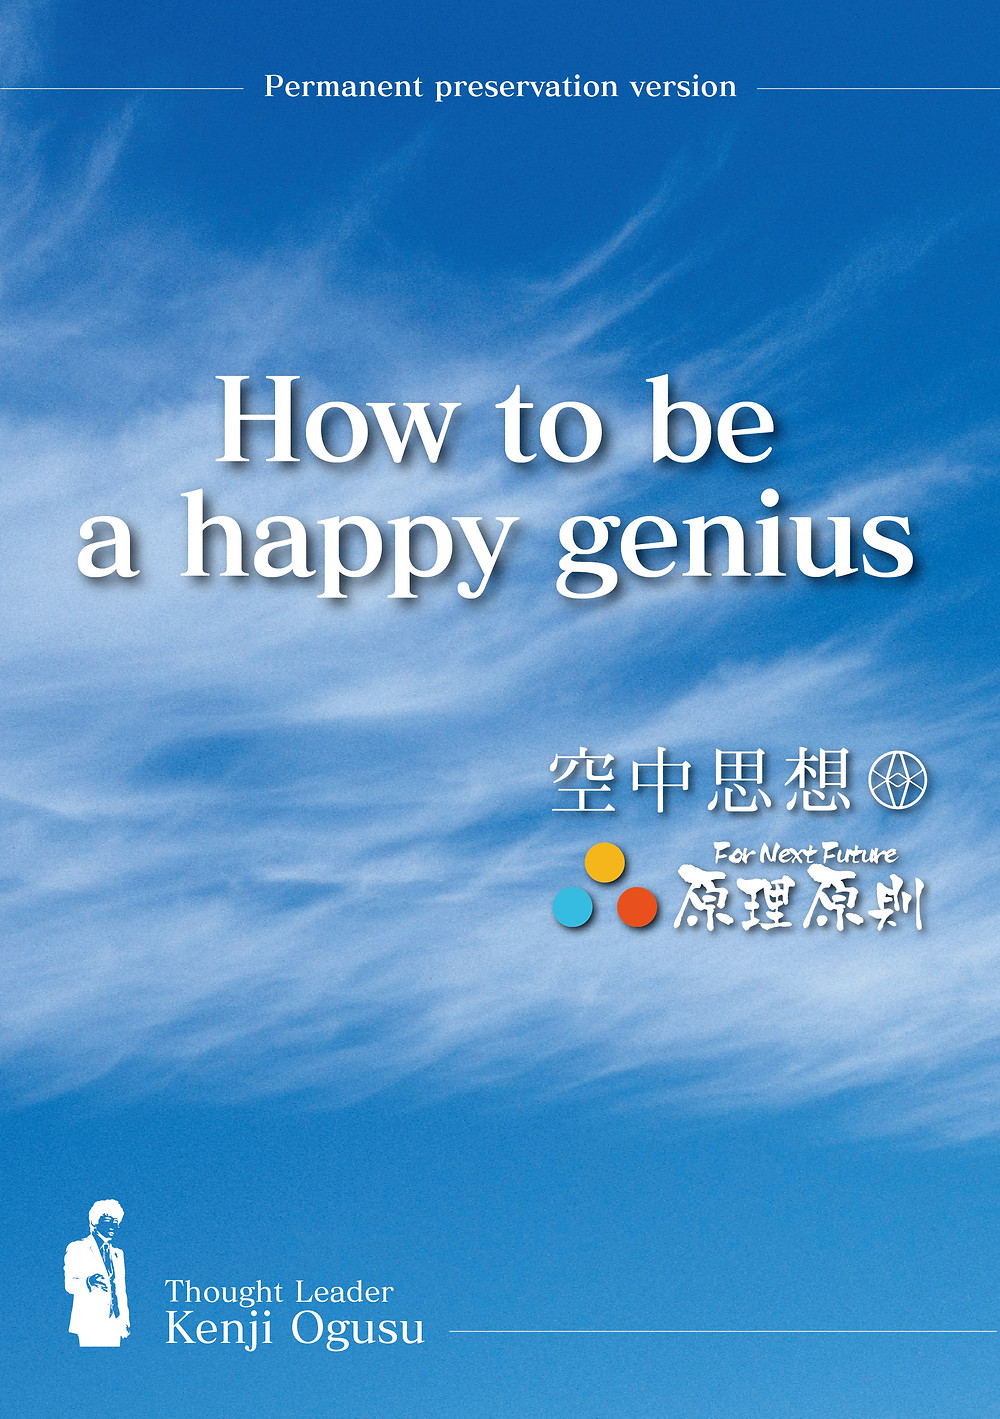 How to be a happy genius・幸せな天才になる方法